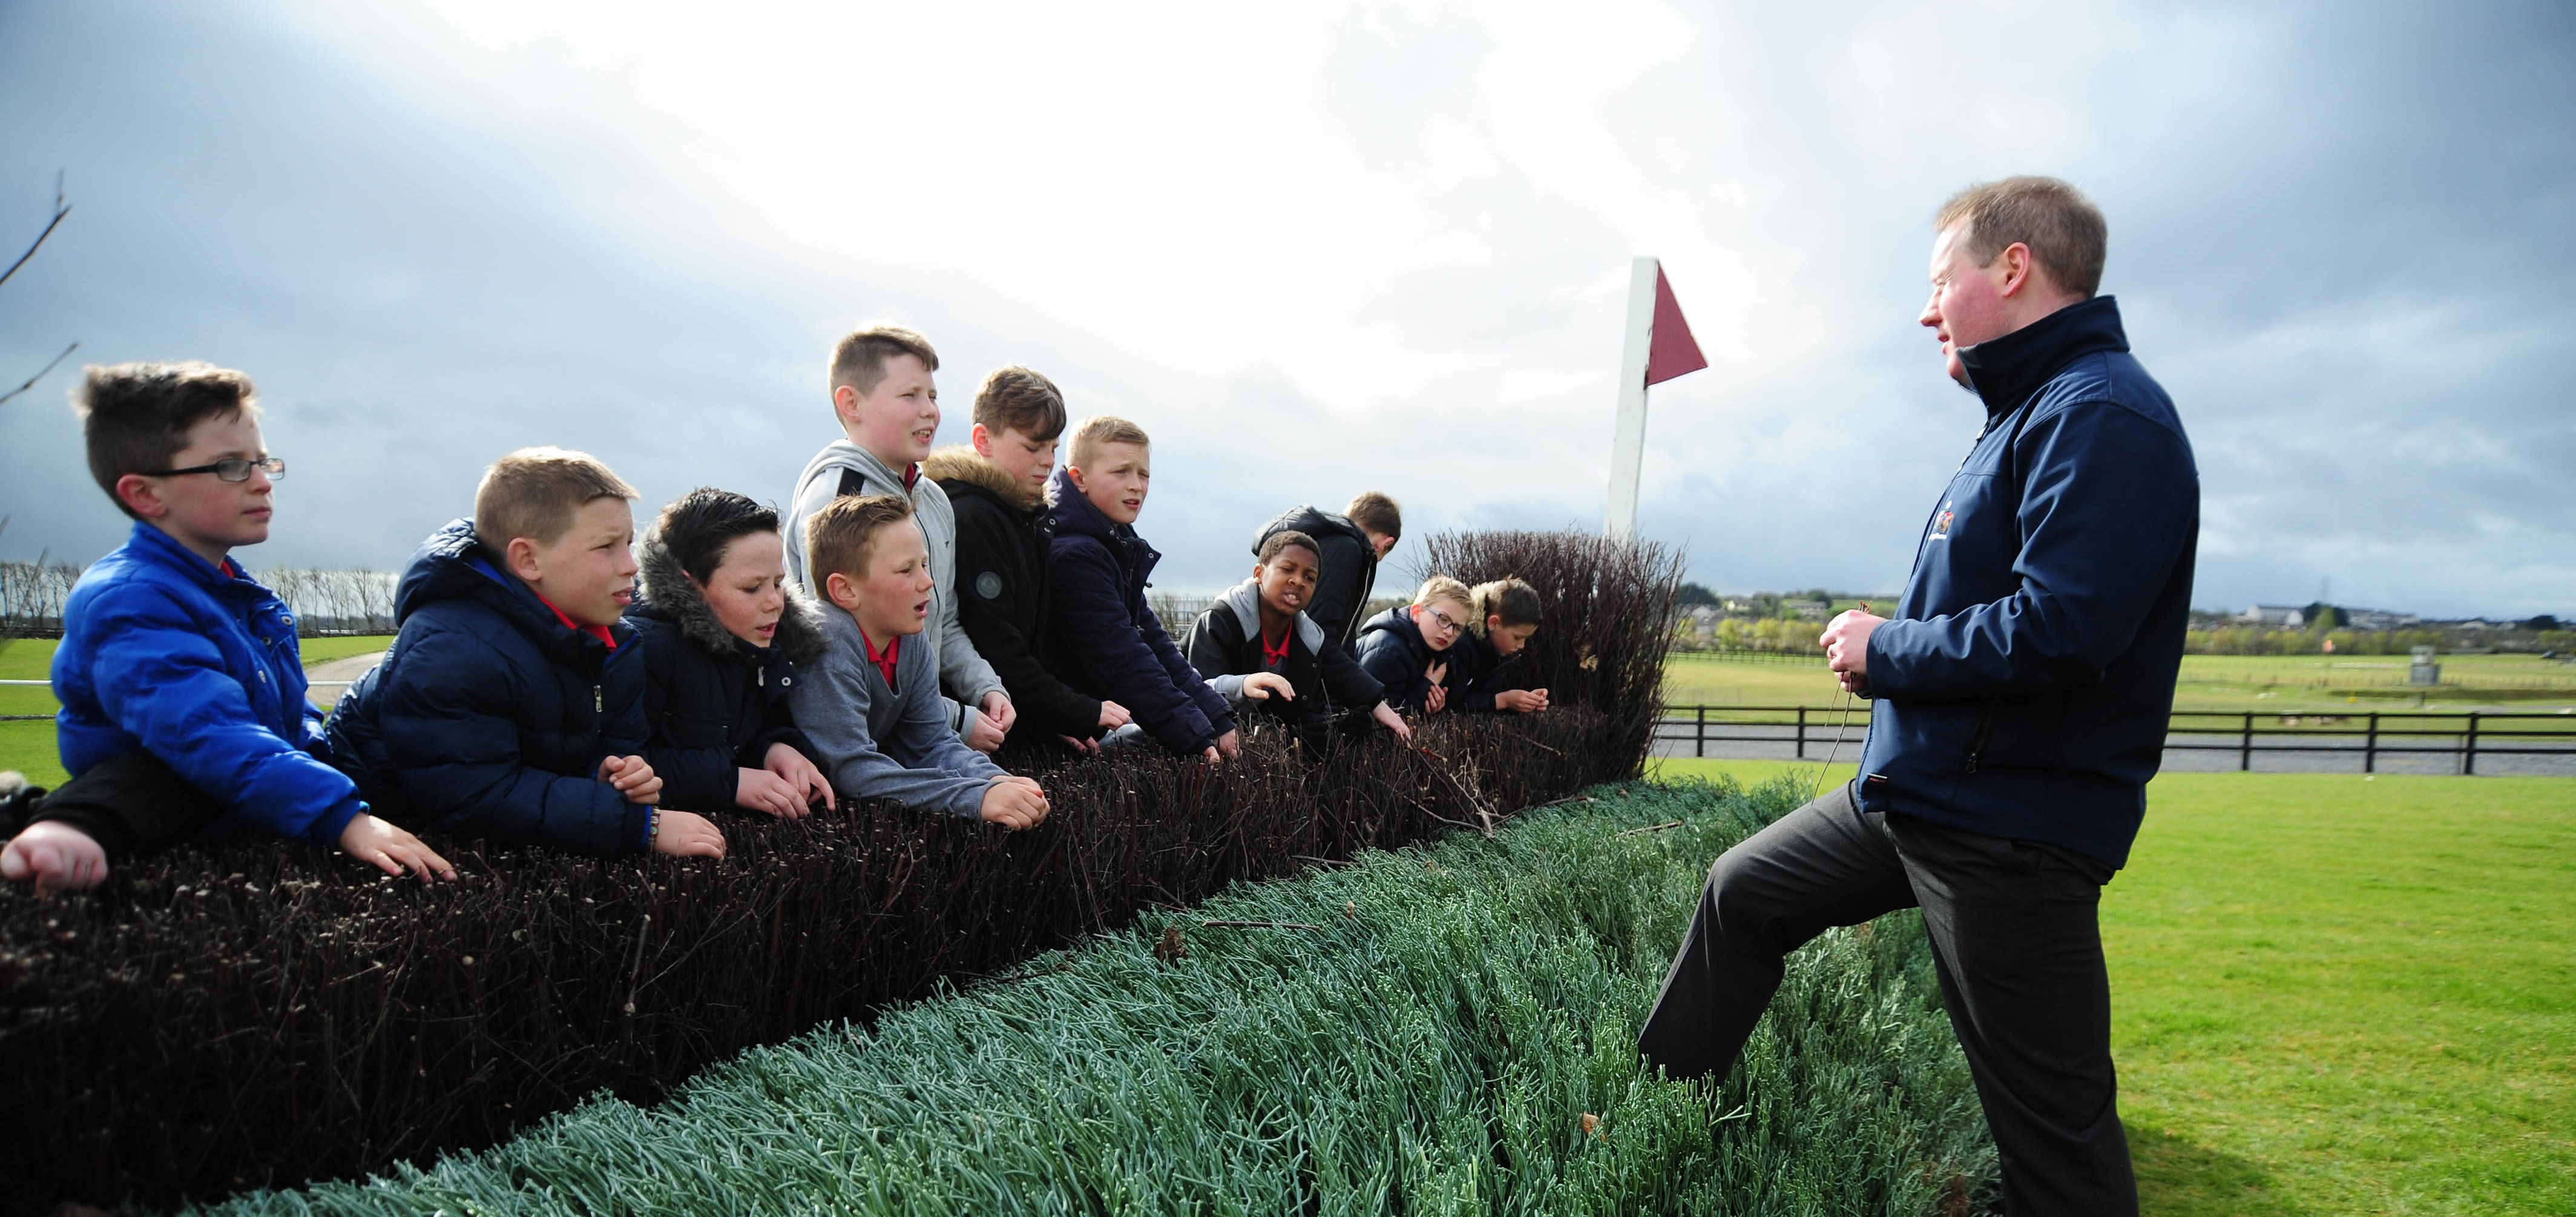 RACING: KIDS GO RACING SET FOR GALWAY IN MARCH